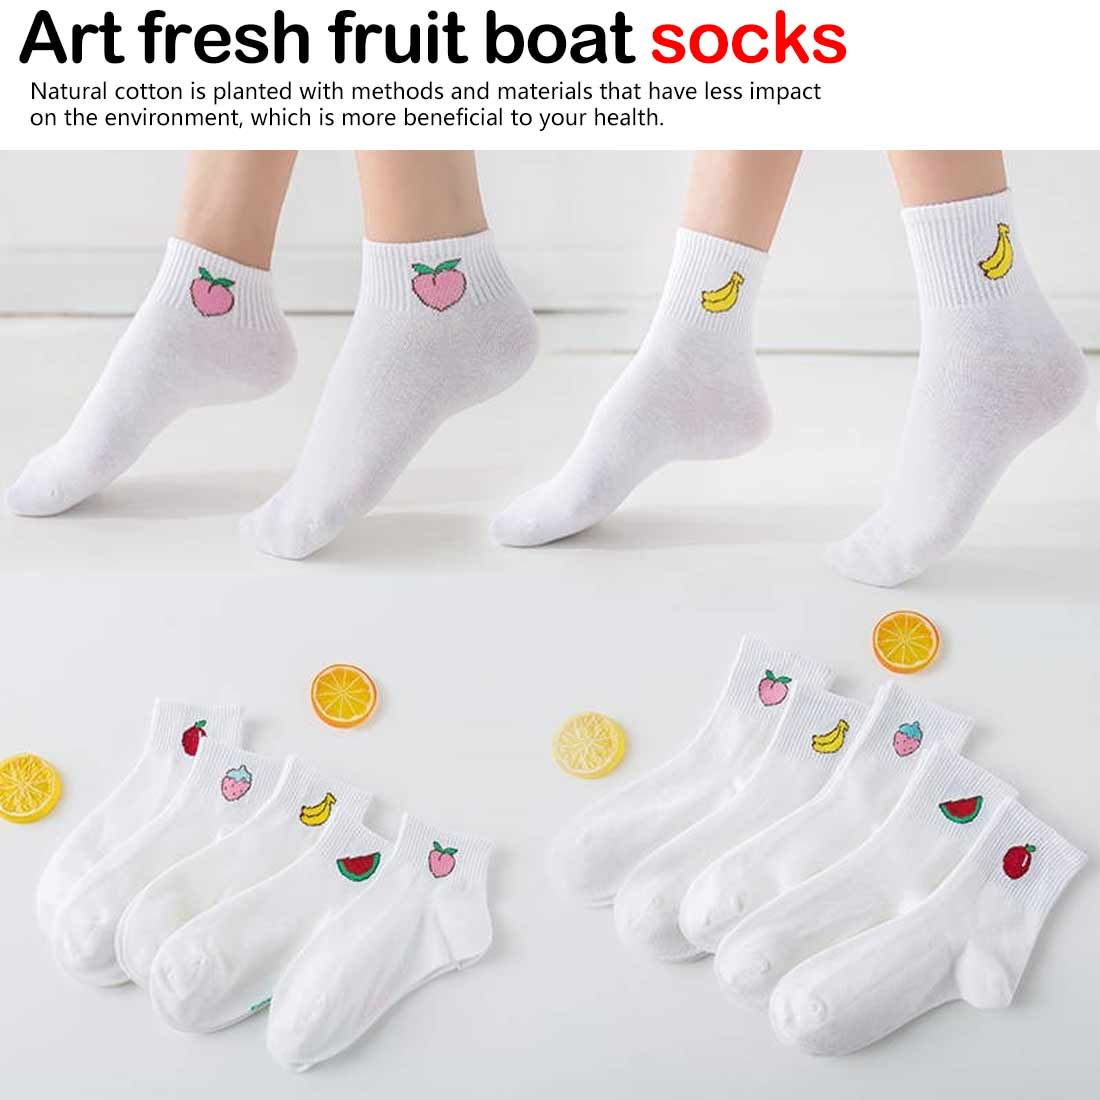 Cute Funny Harajuku Concise Style socks  Art fresh fruit boat comfortable cotton for female